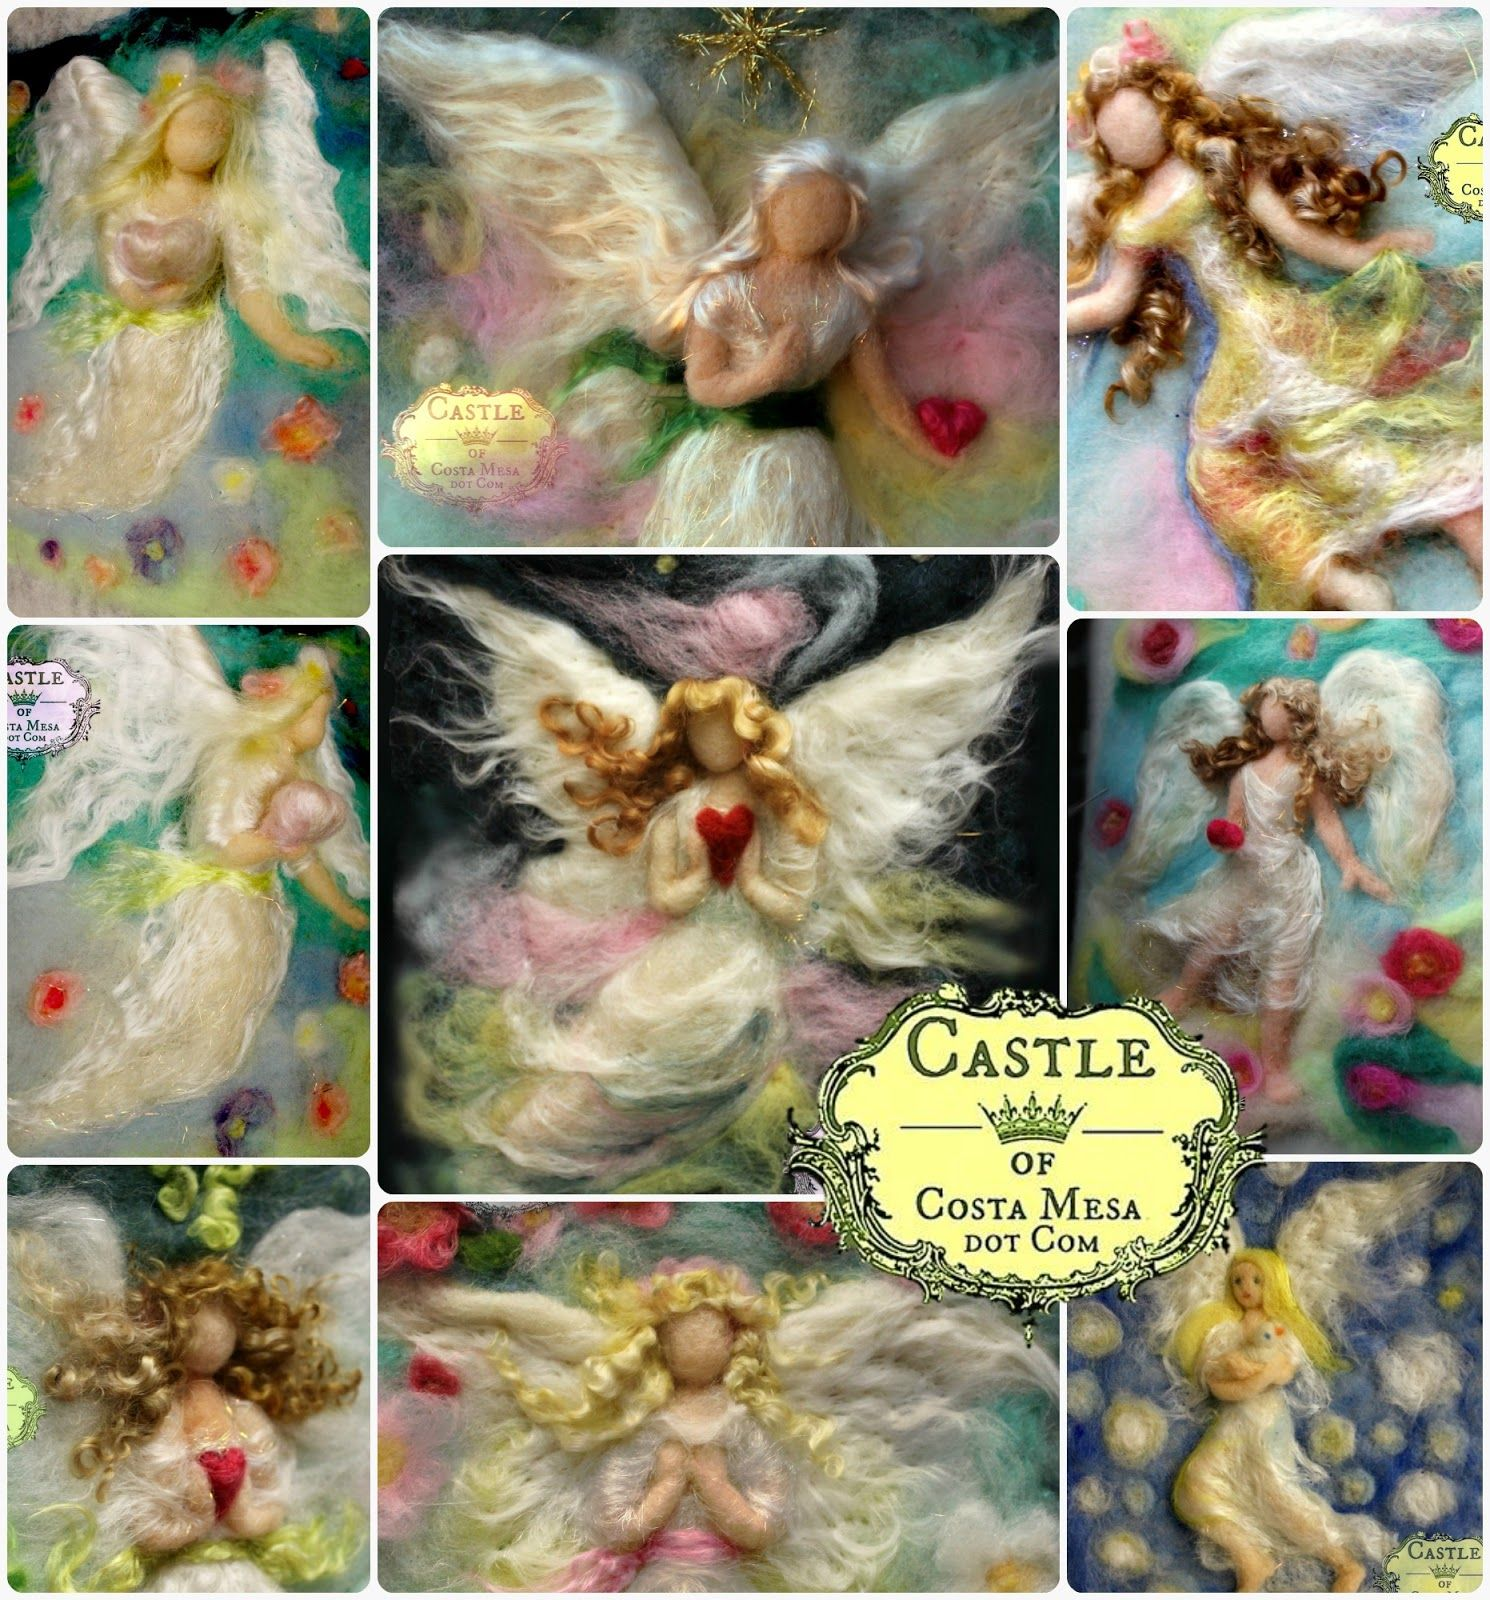 The Felting Lounge: Artist Interview with Jzin Teng of Castle of Costa Mesa